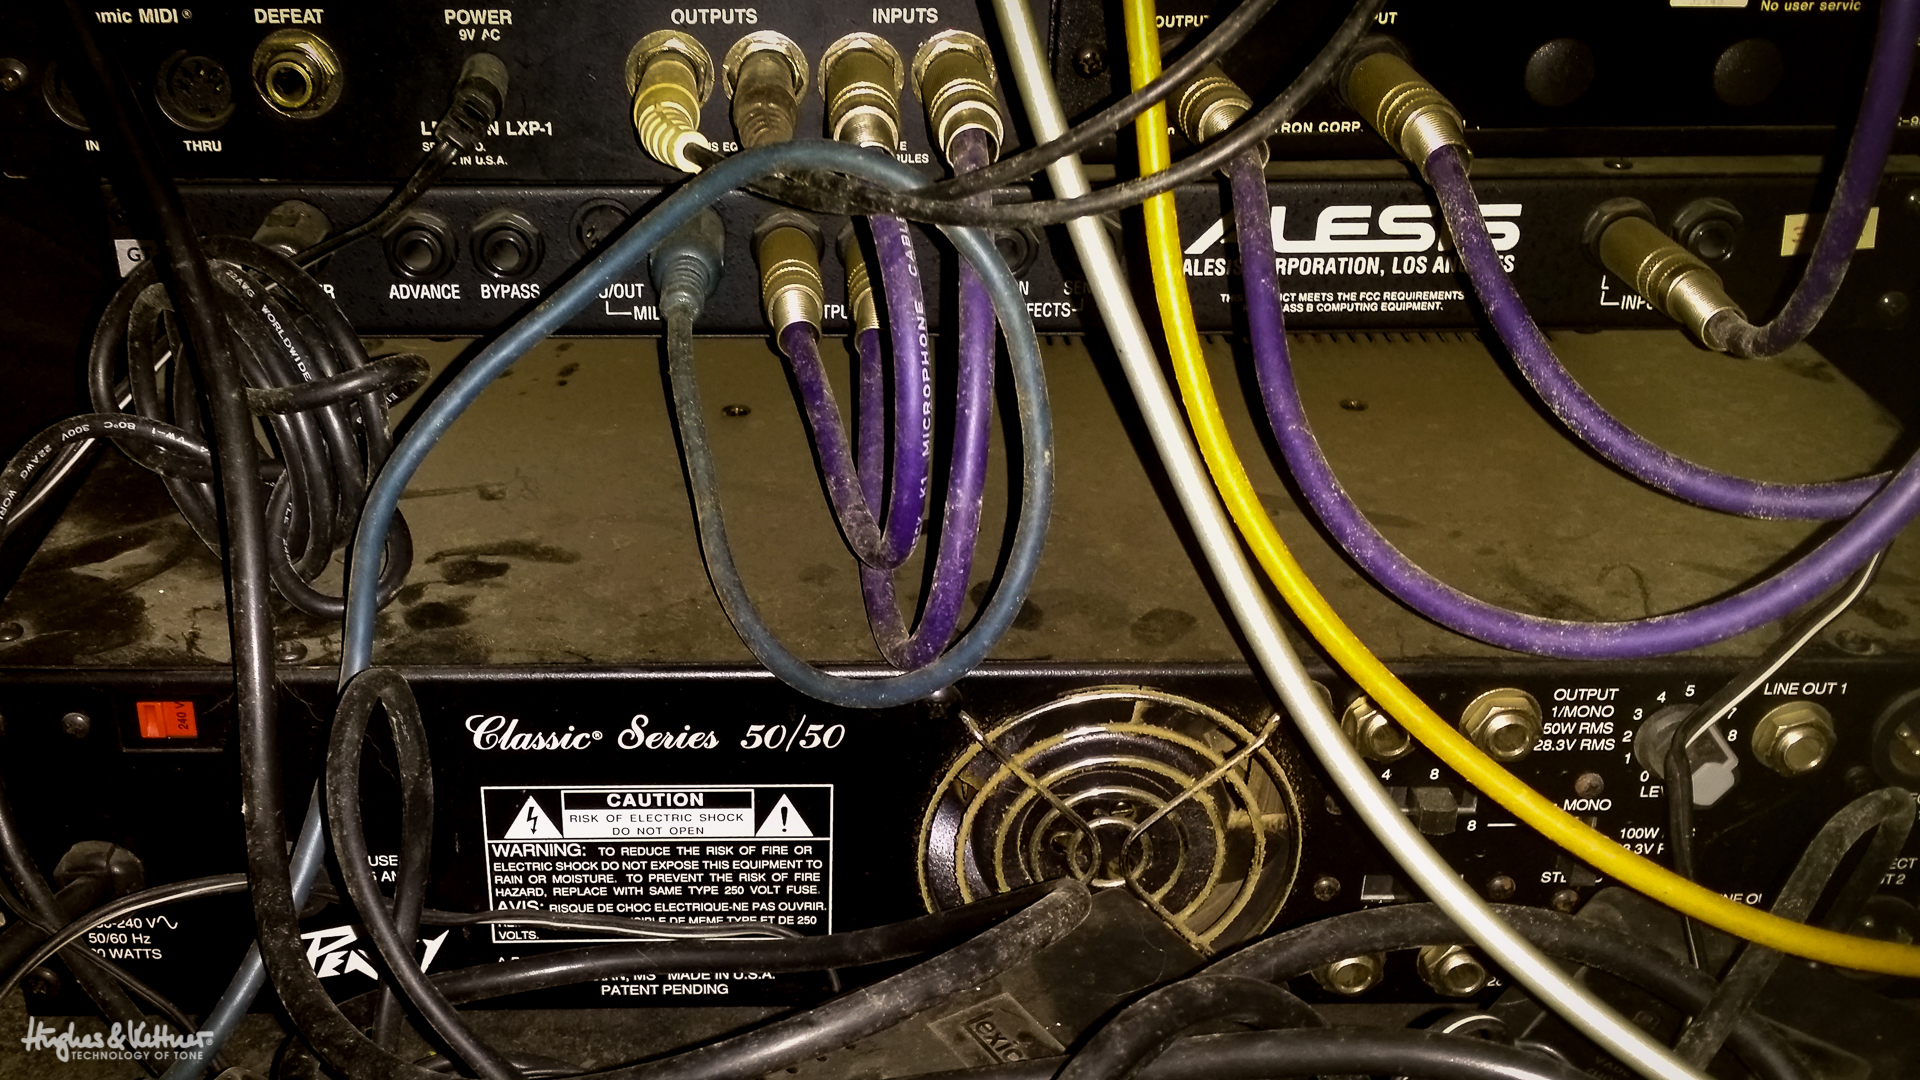 Luxury Ed S Wire Rope Amp Rigging Ideas - Electrical Diagram Ideas ...